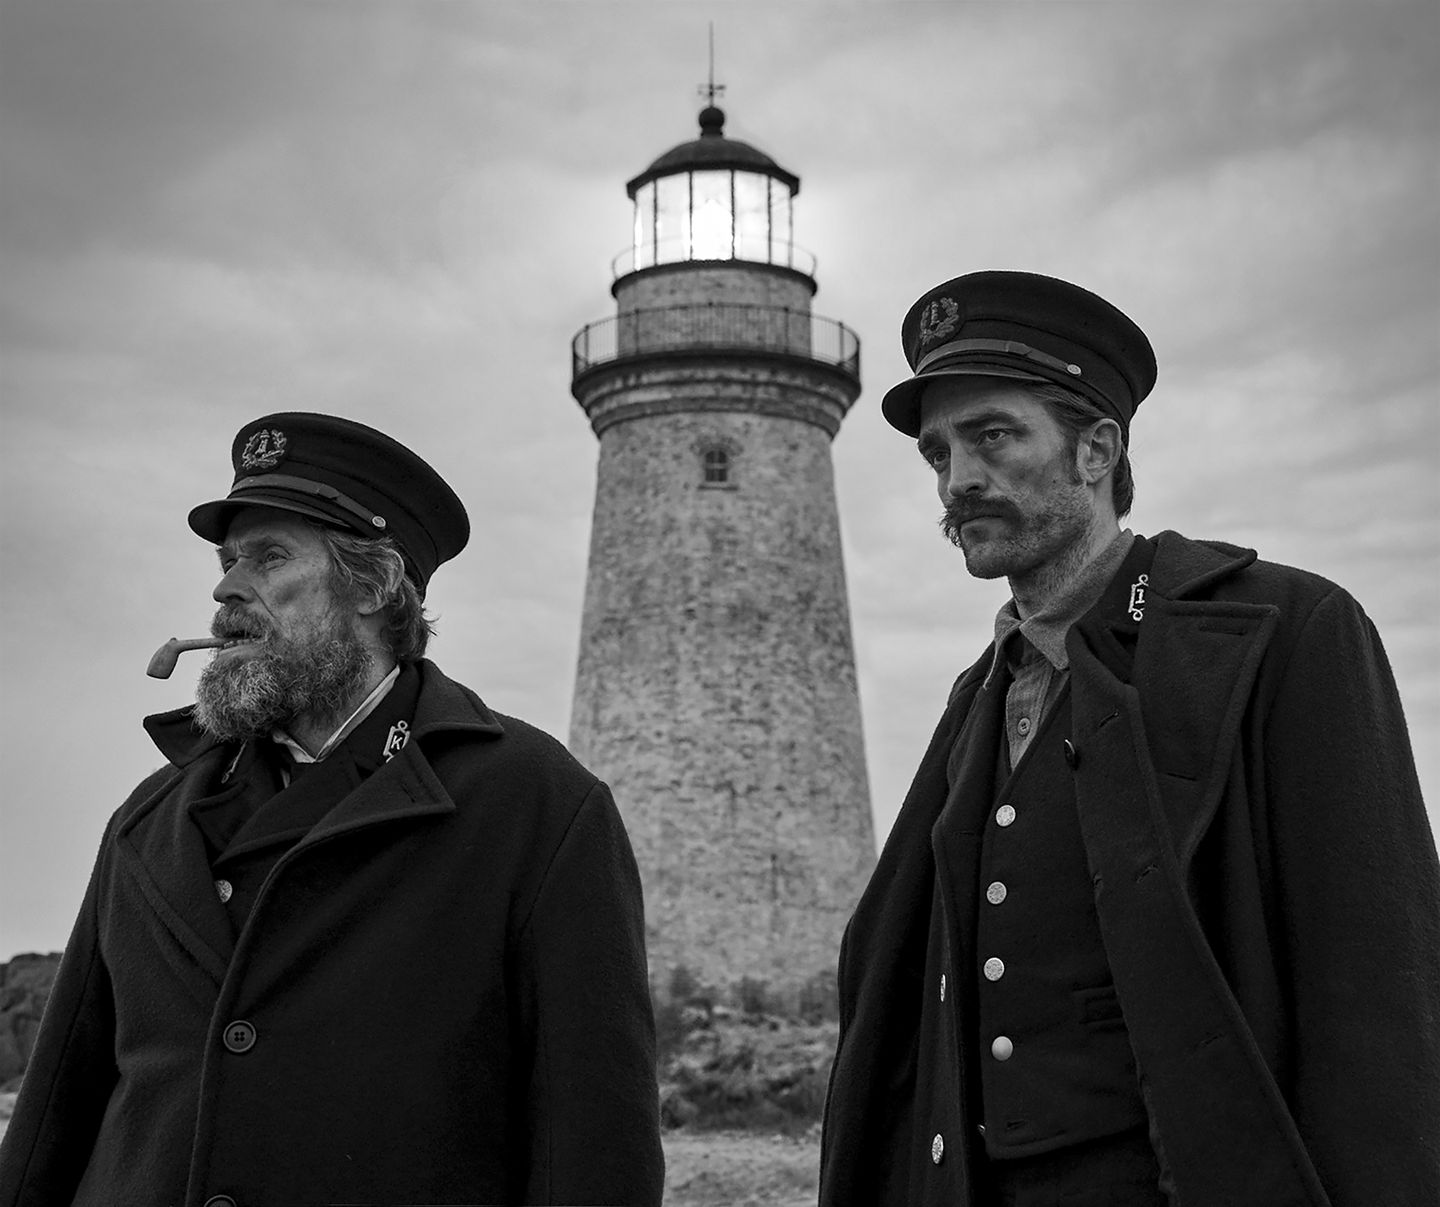 Robert Eggers' new film 'The Lighthouse' is set on an island in ...